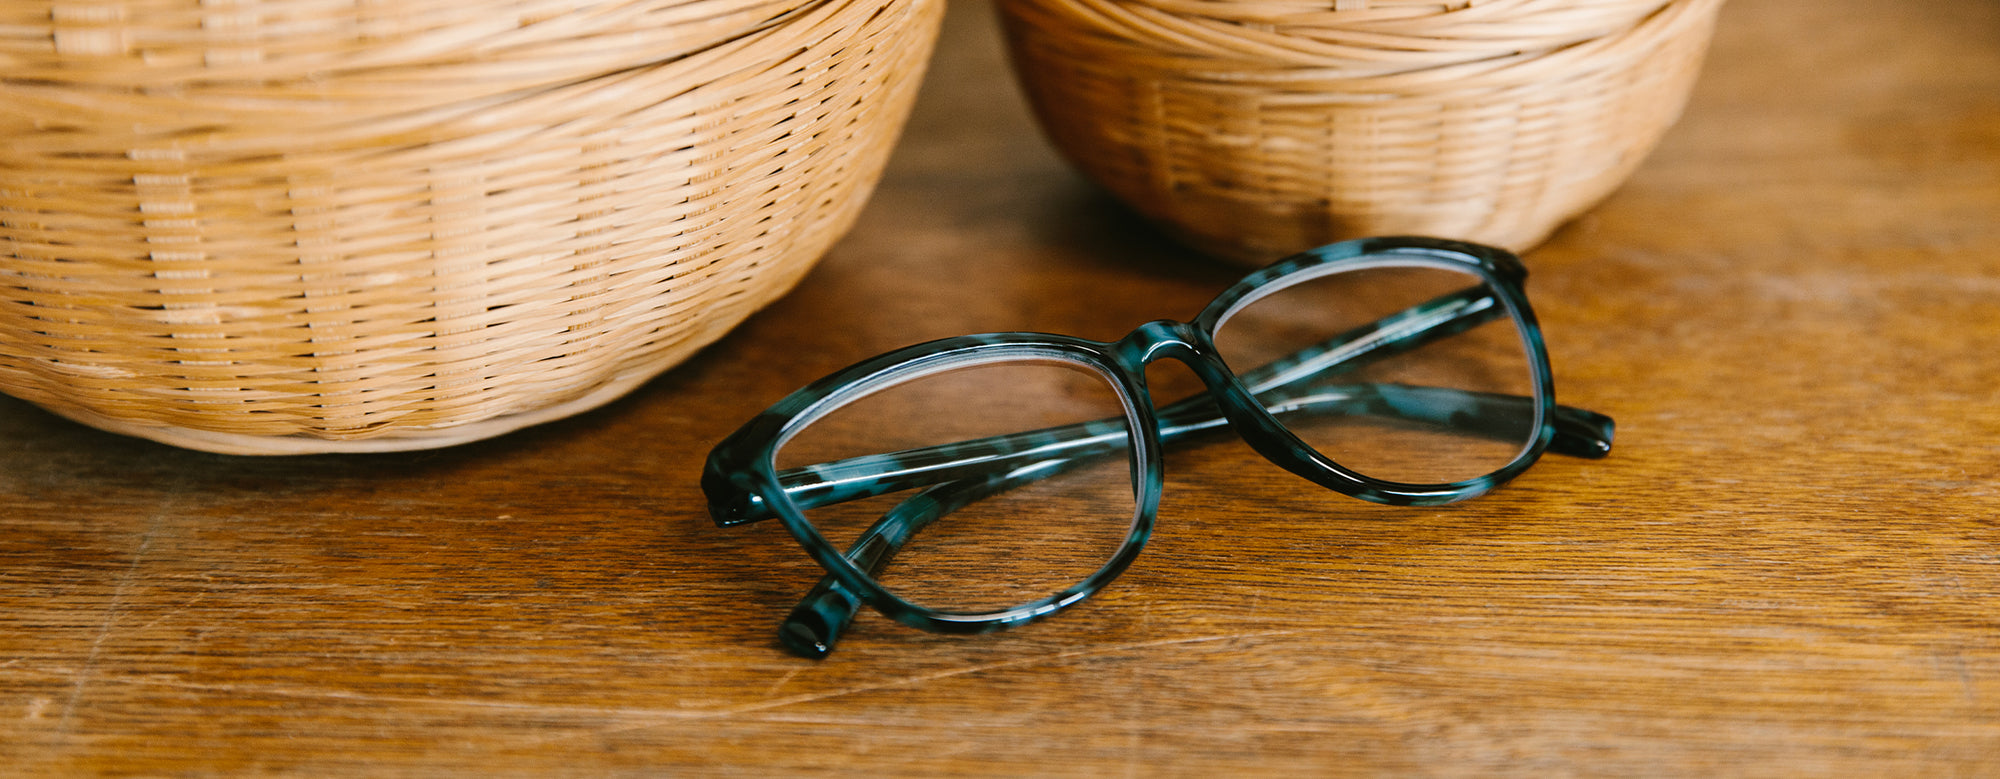 Peepers Bengal blue light reading glasses folded on a wooden table